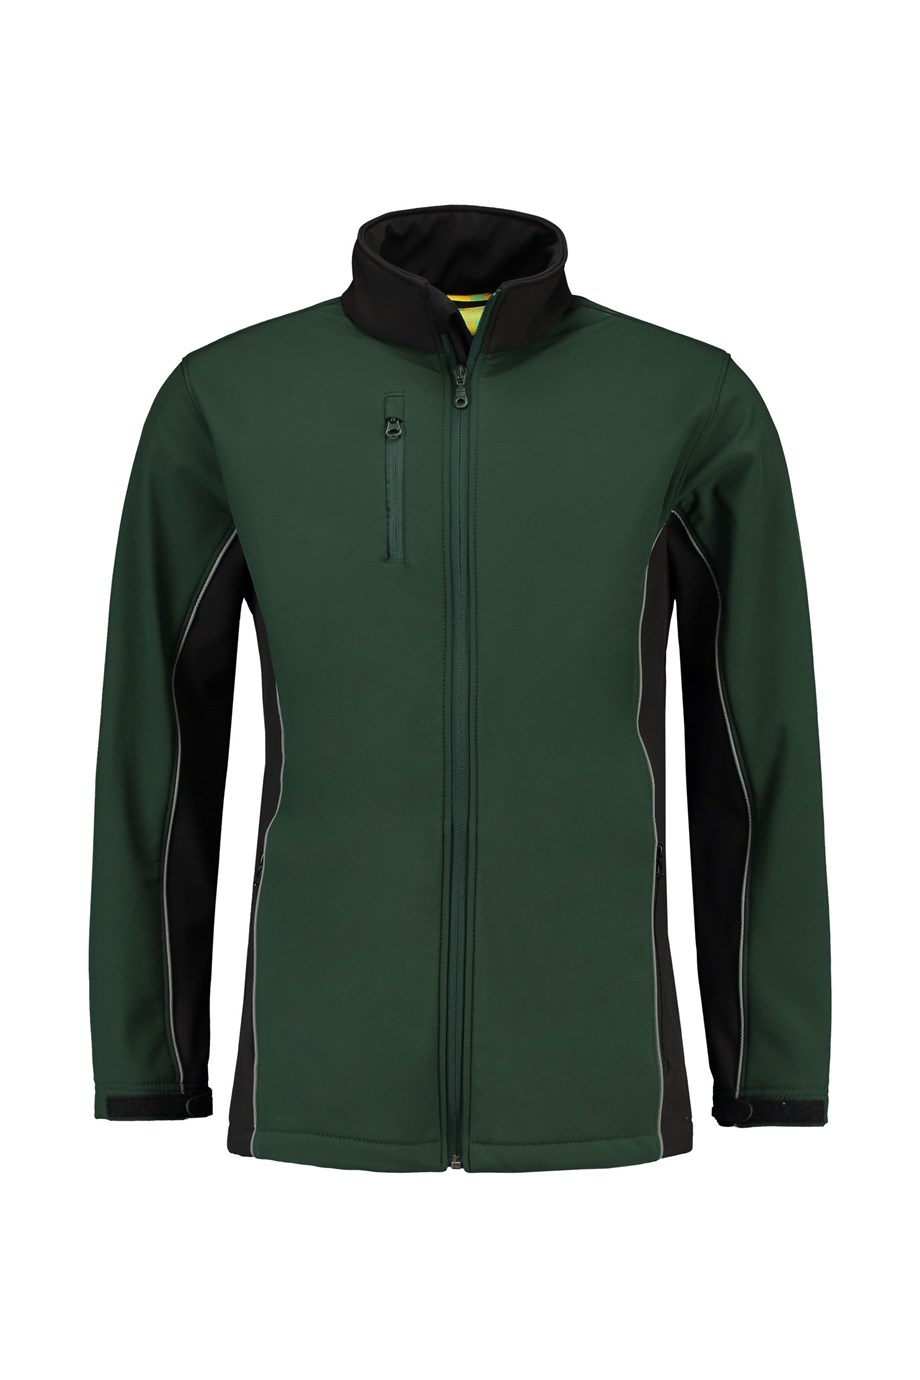 forest green - black